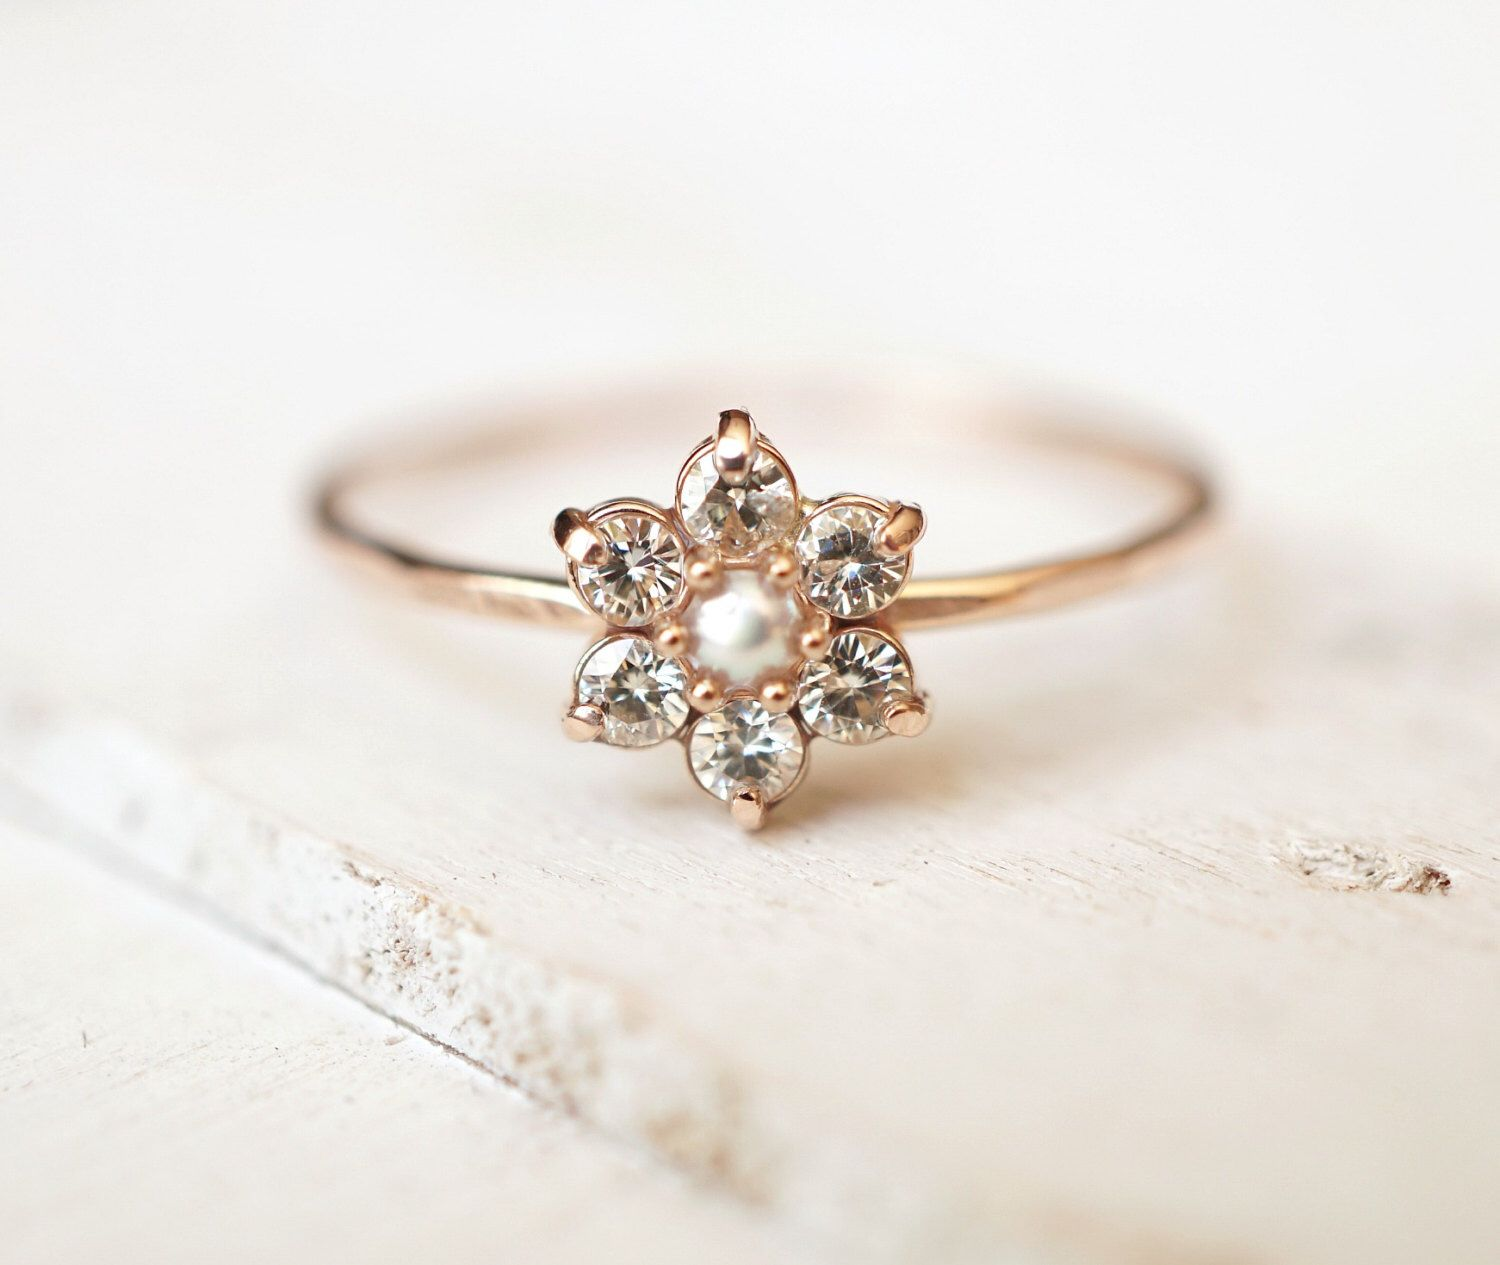 A personal favorite from my etsy shop httpsetsyca wedding ring ideas moissanite ring daisy ring flower ring cluster ring by luxuring pretty every day kind of ring izmirmasajfo